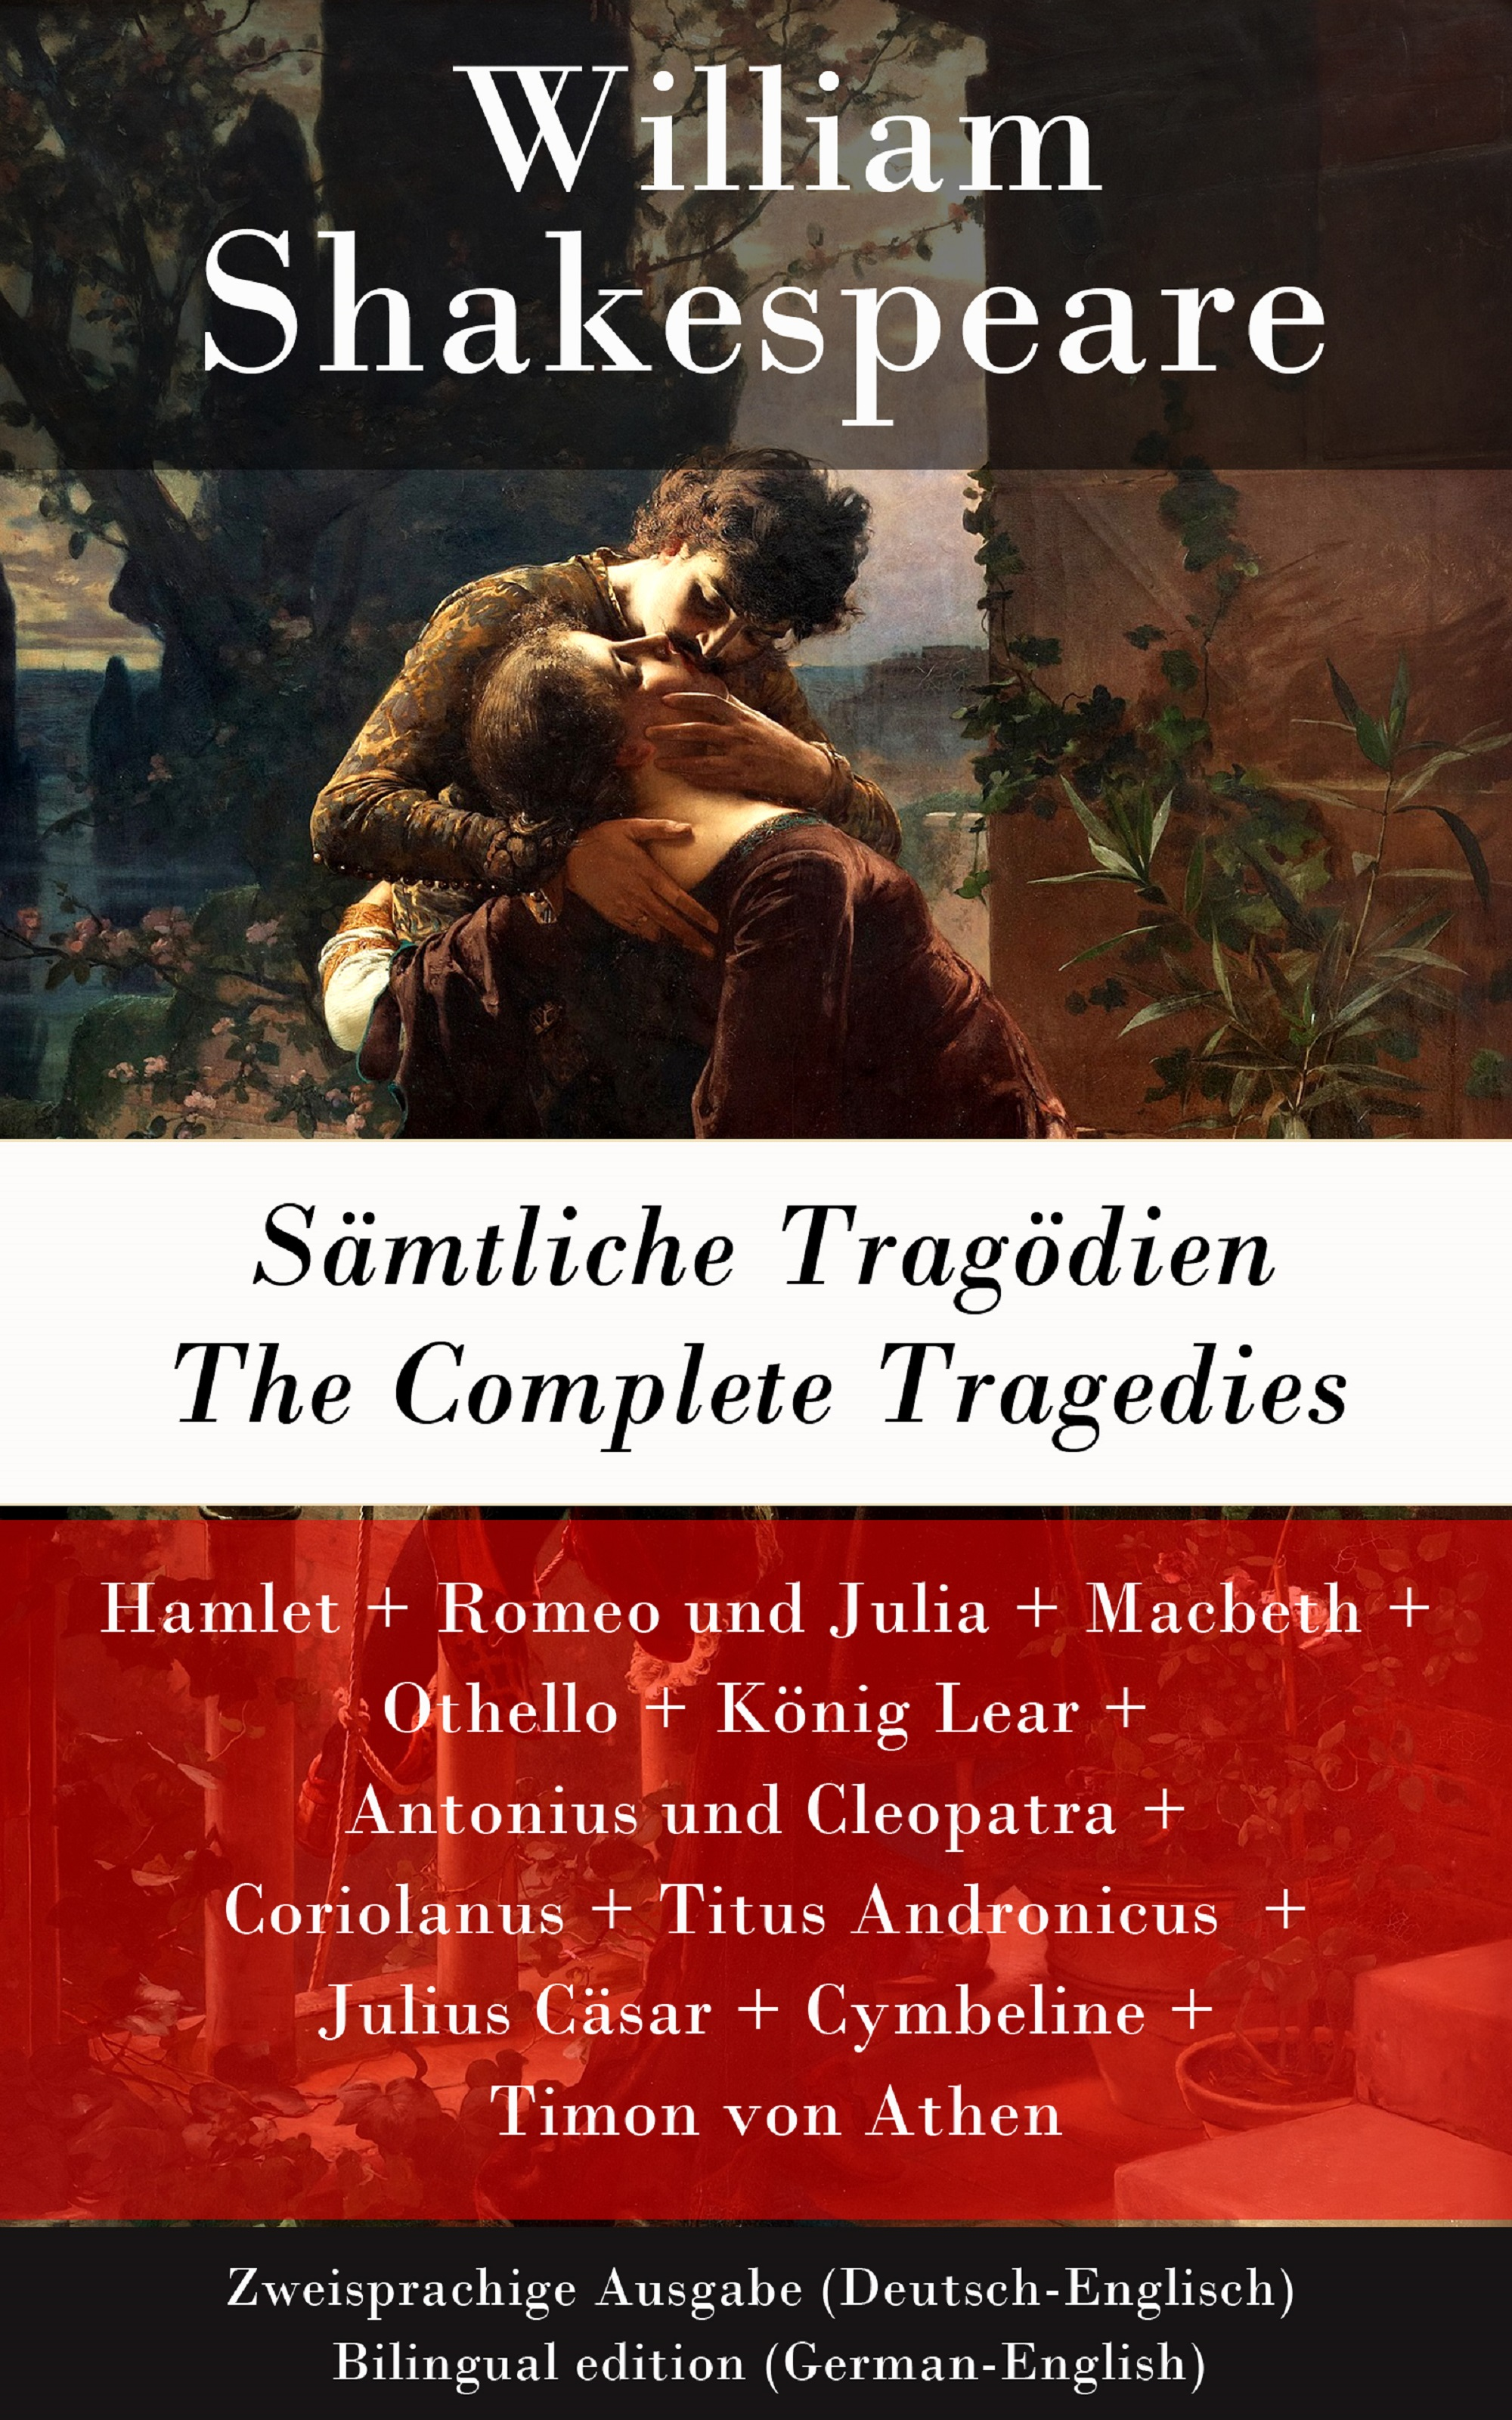 samtliche tragodien the complete tragedies zweisprachige ausgabe deutsch englisch bilingual edition german english